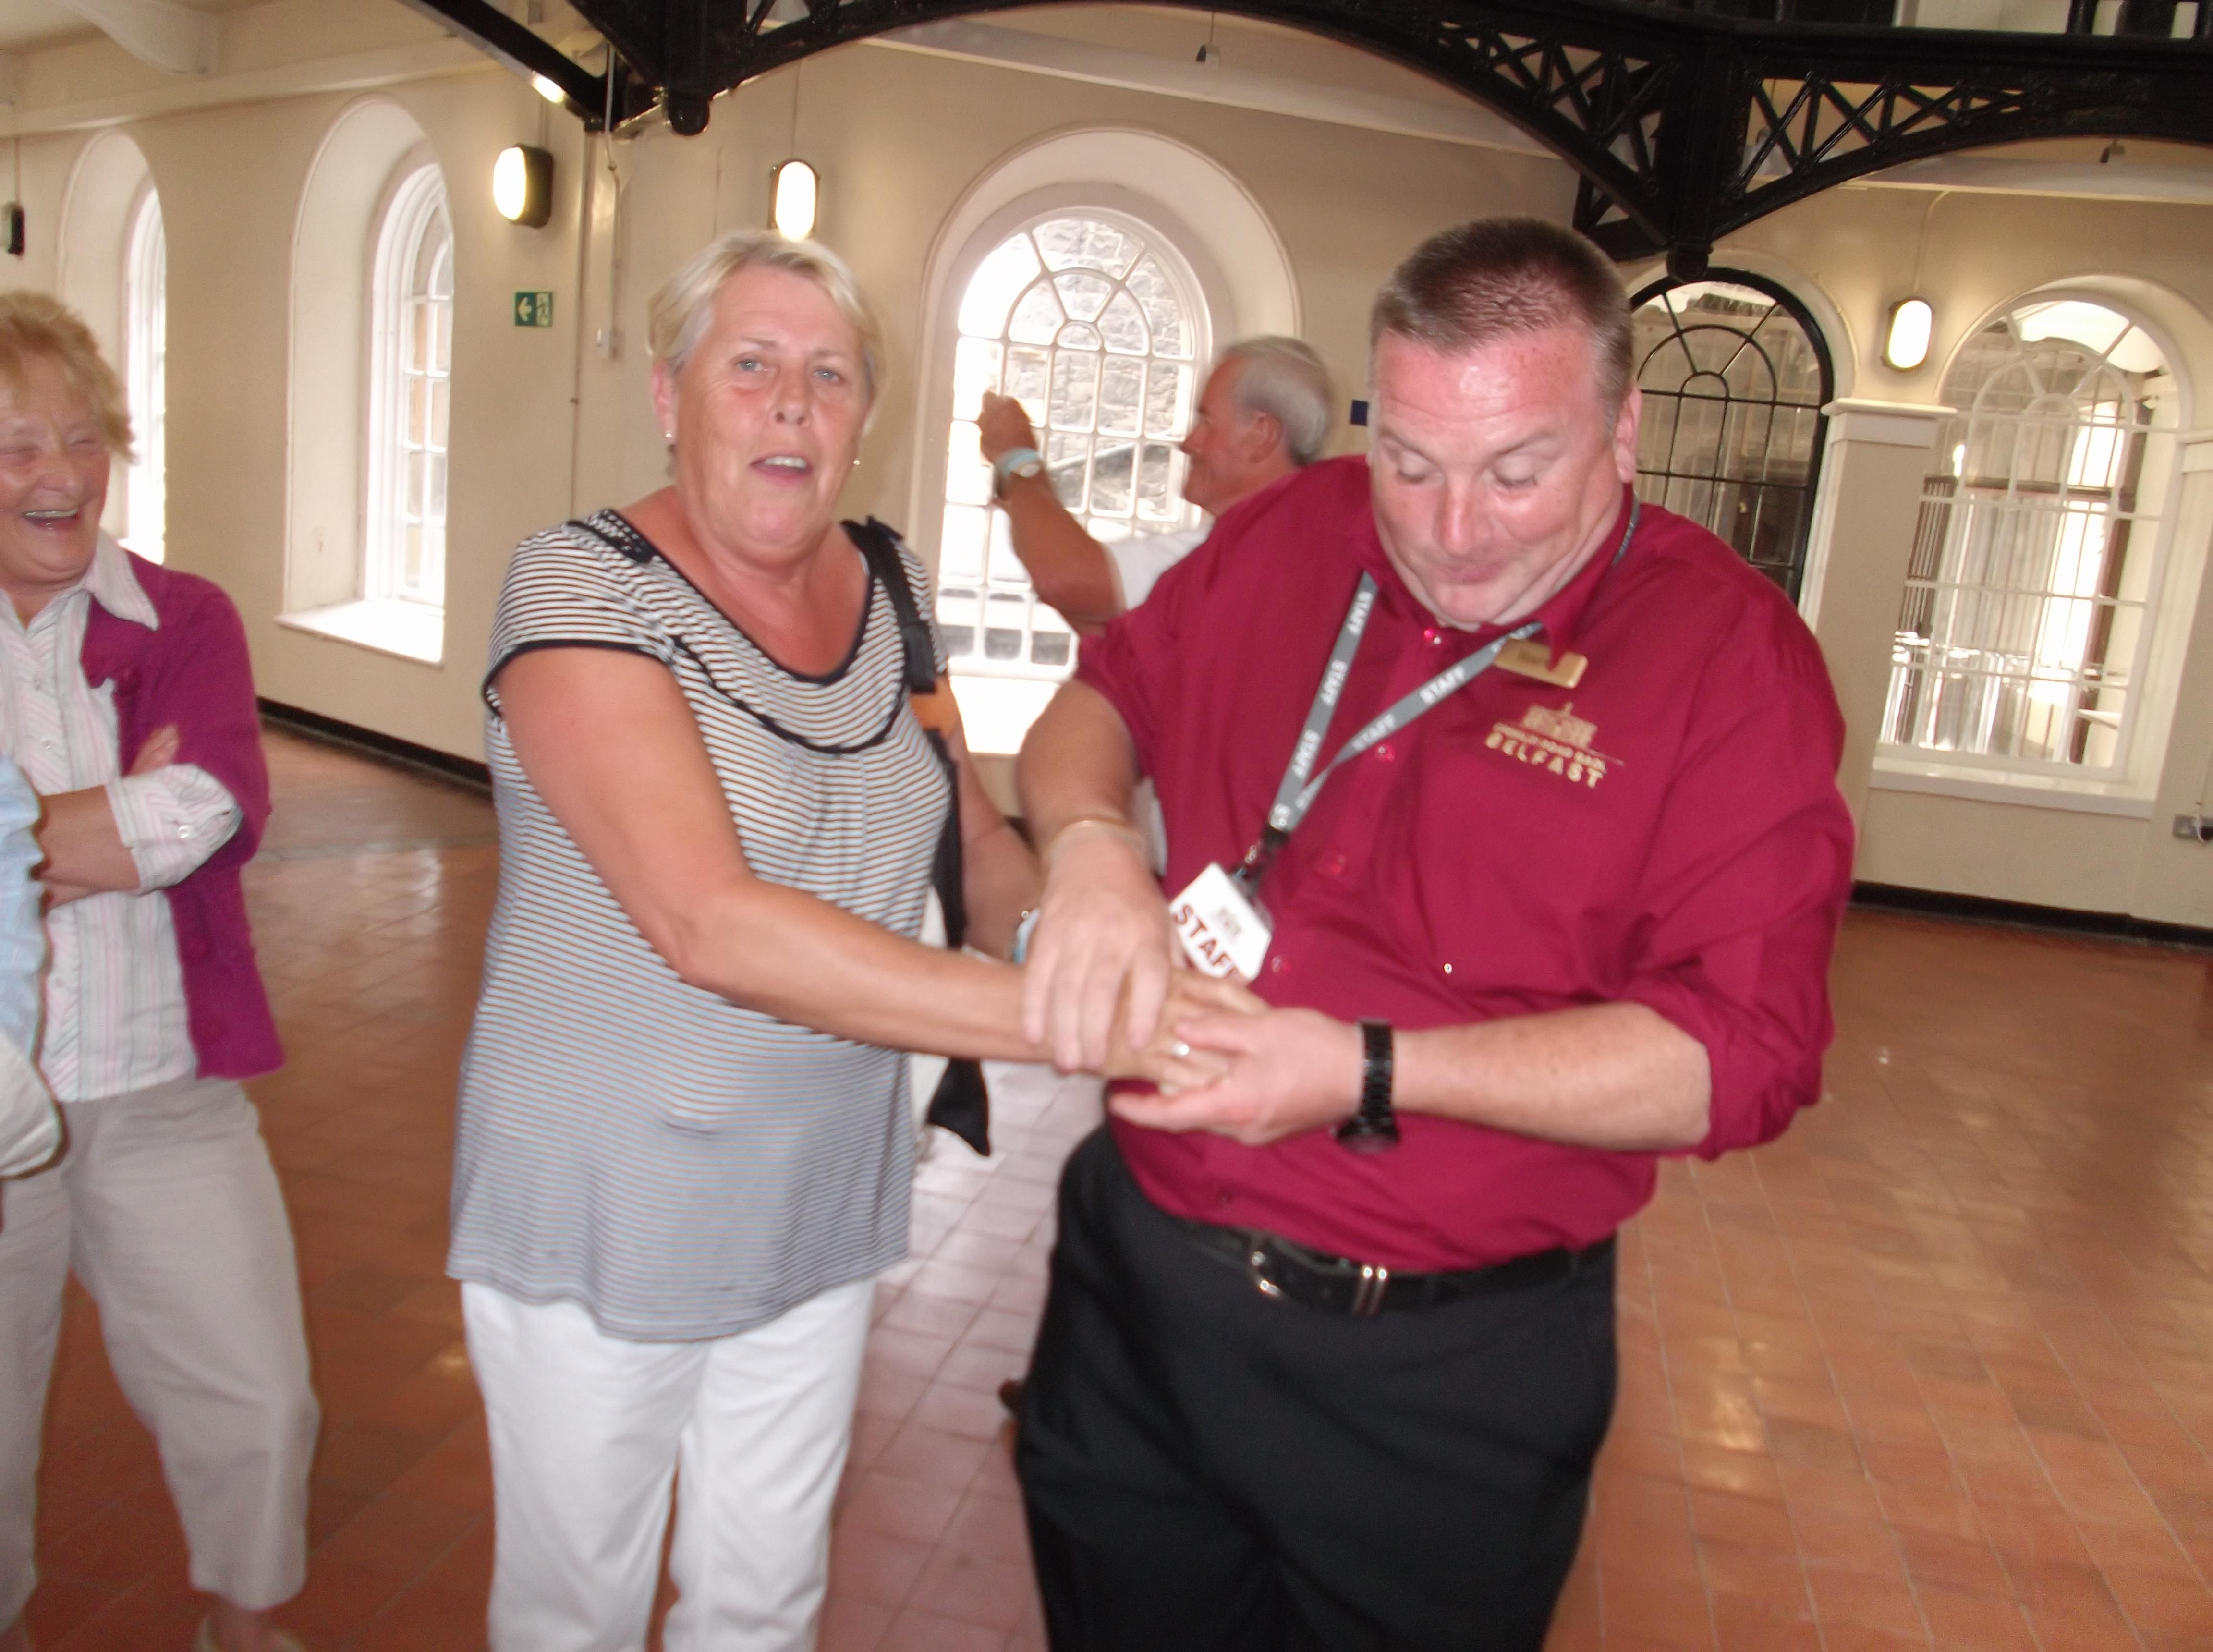 June being cuffed at the Gaol sc